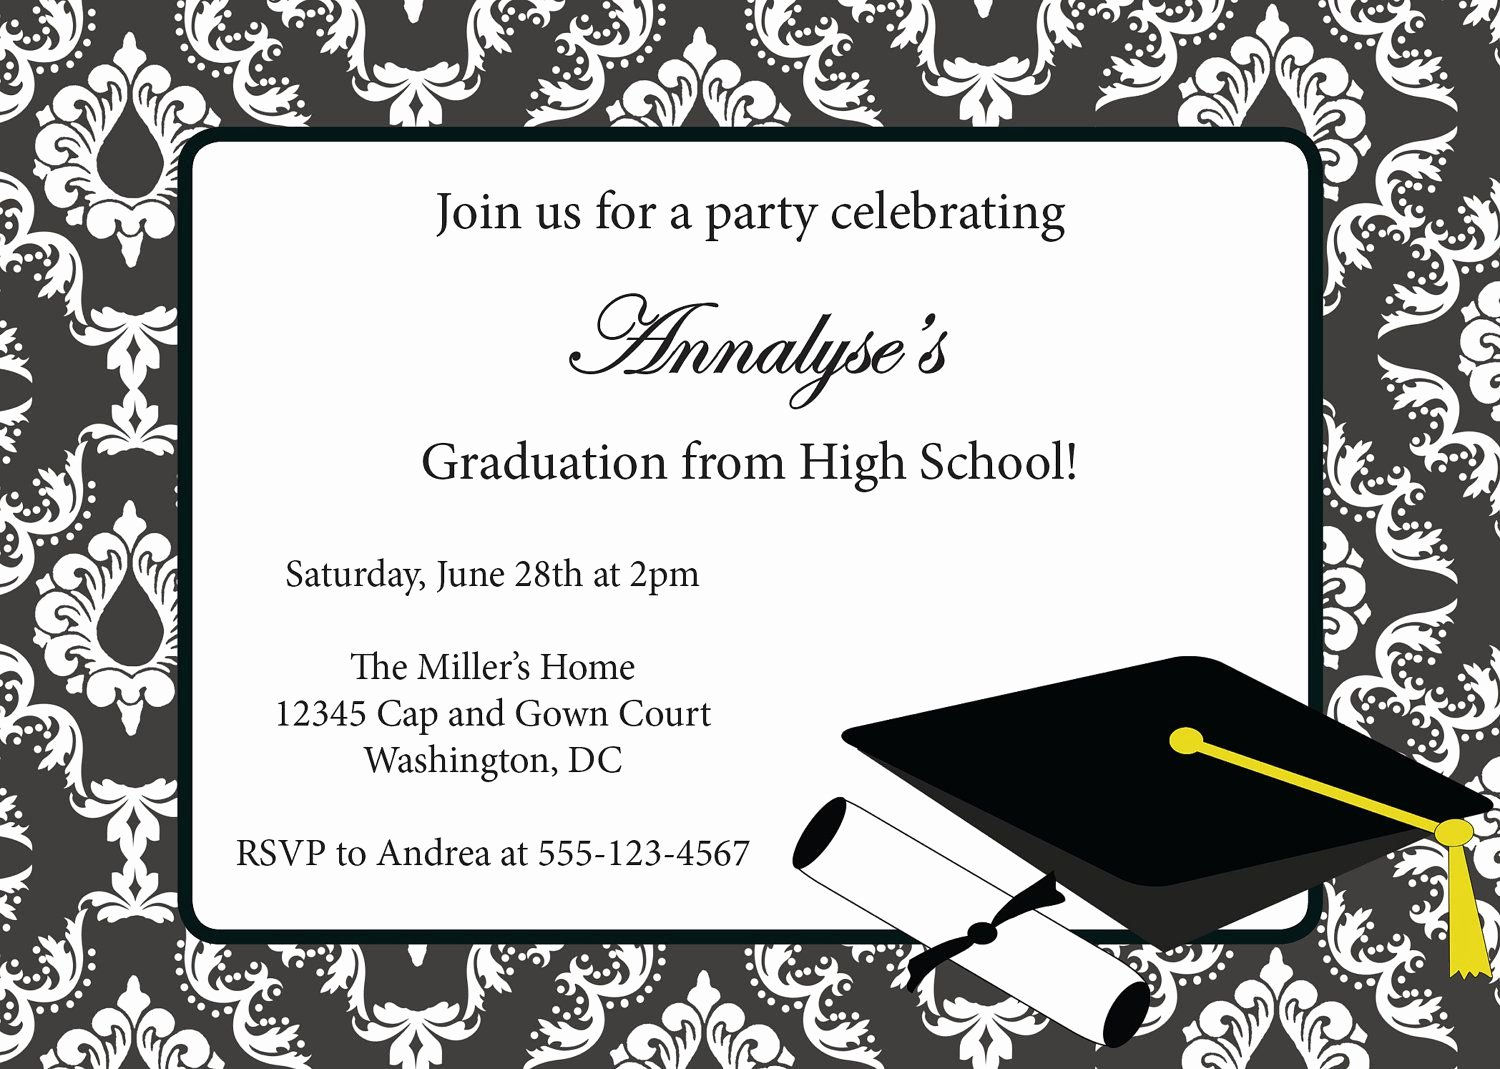 Examples Of Graduation Party Invitations Lovely Graduation Invitations Invitation Card for Graduation